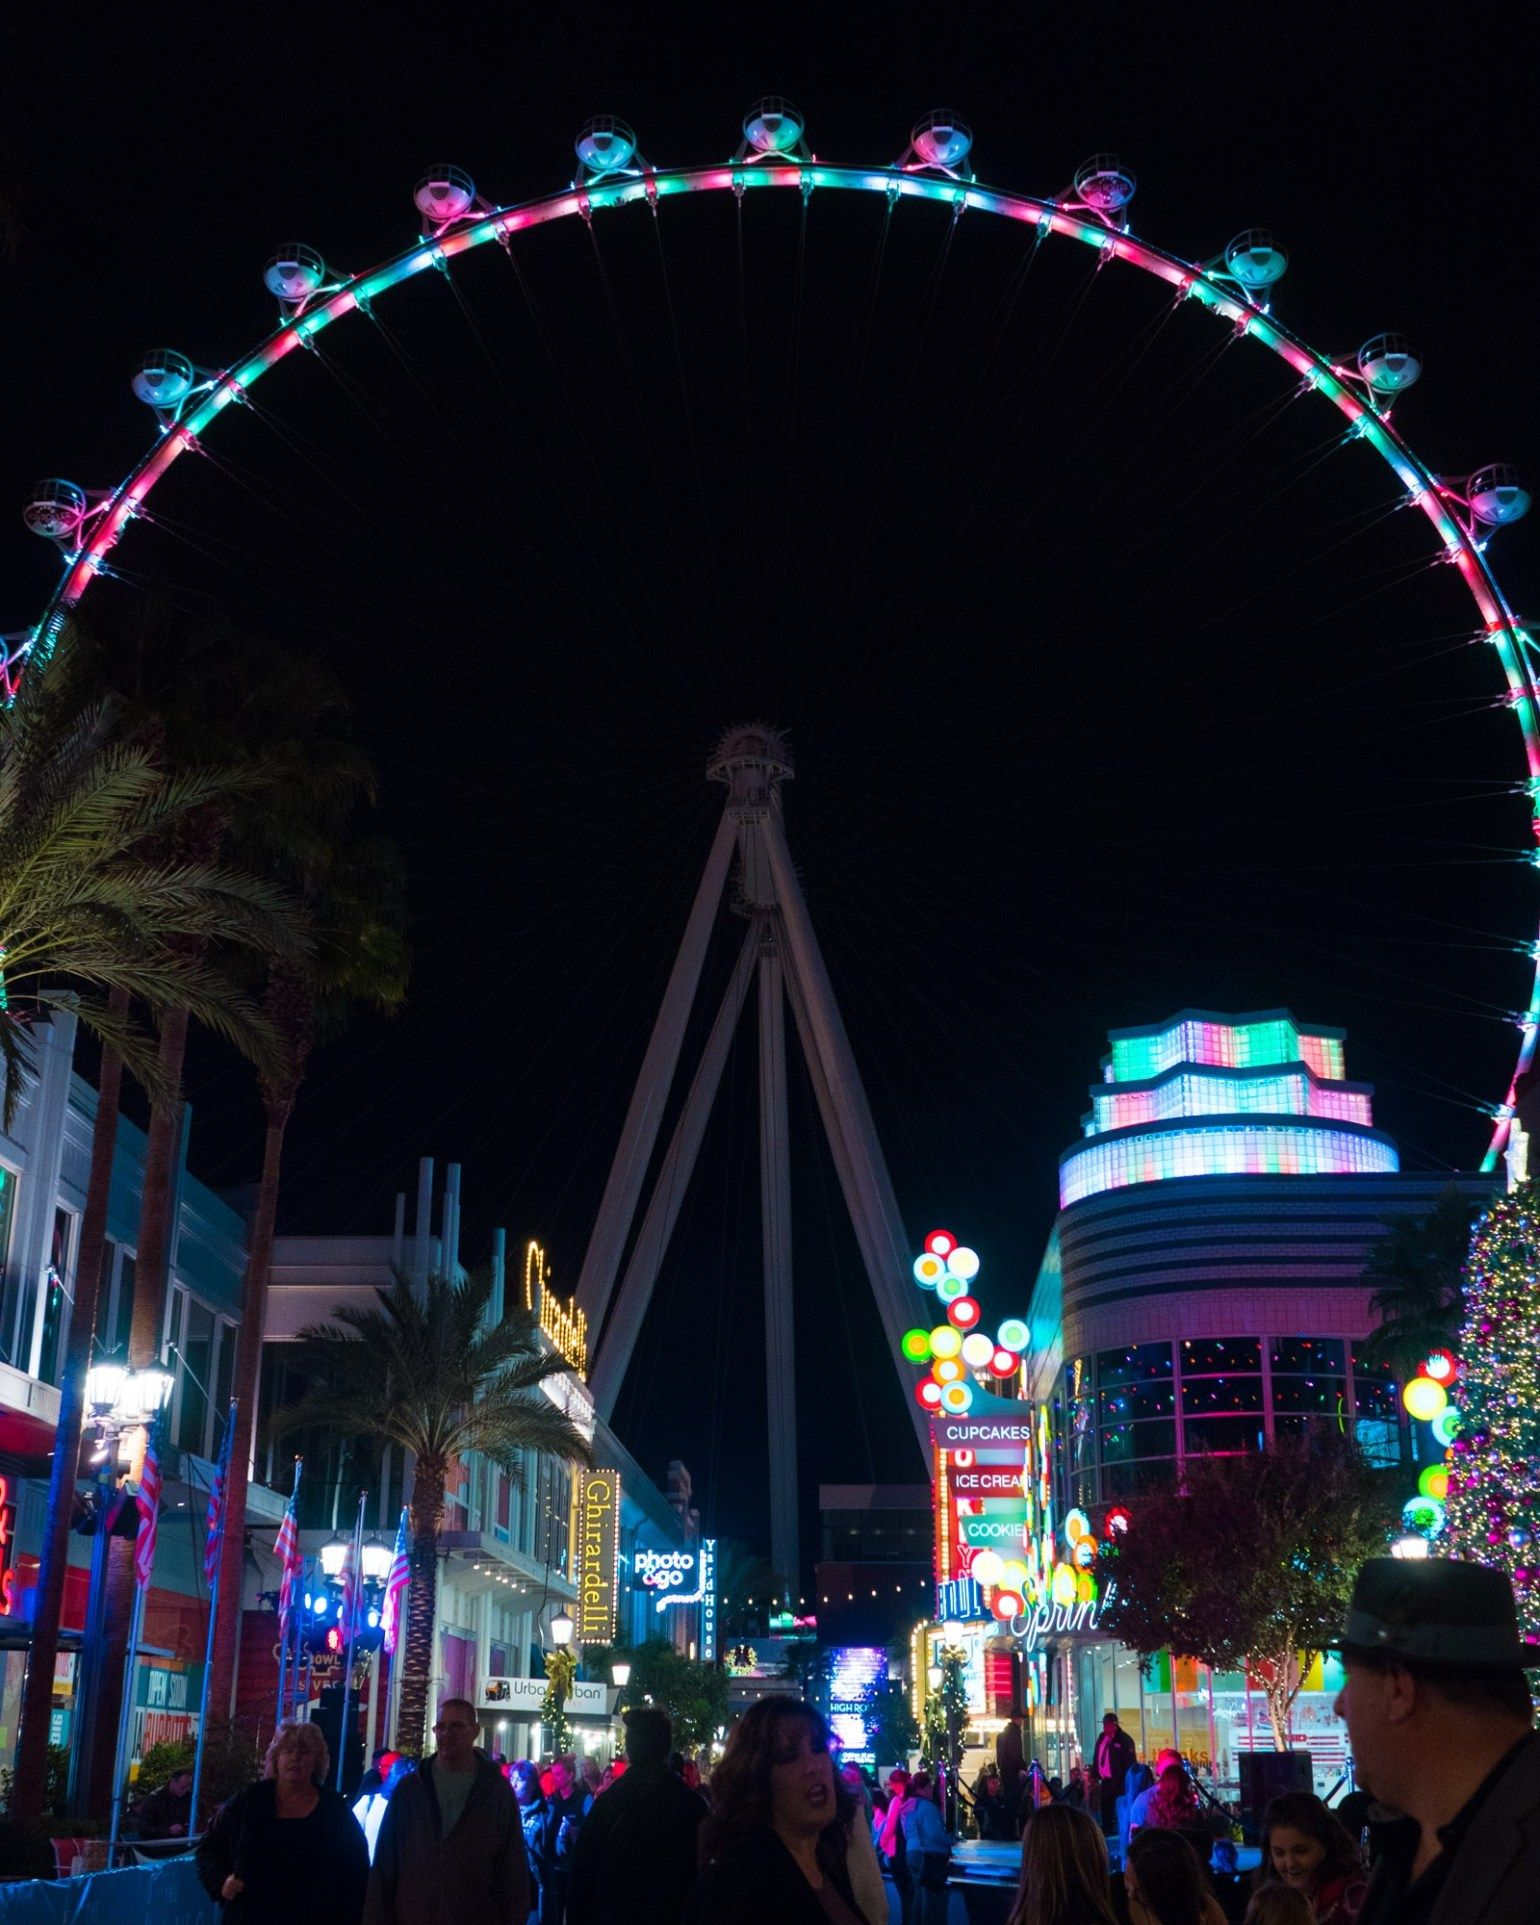 Instagram Las Vegas Vacation: Instagram-Worthy Photos You'll Want To Take In Las Vegas